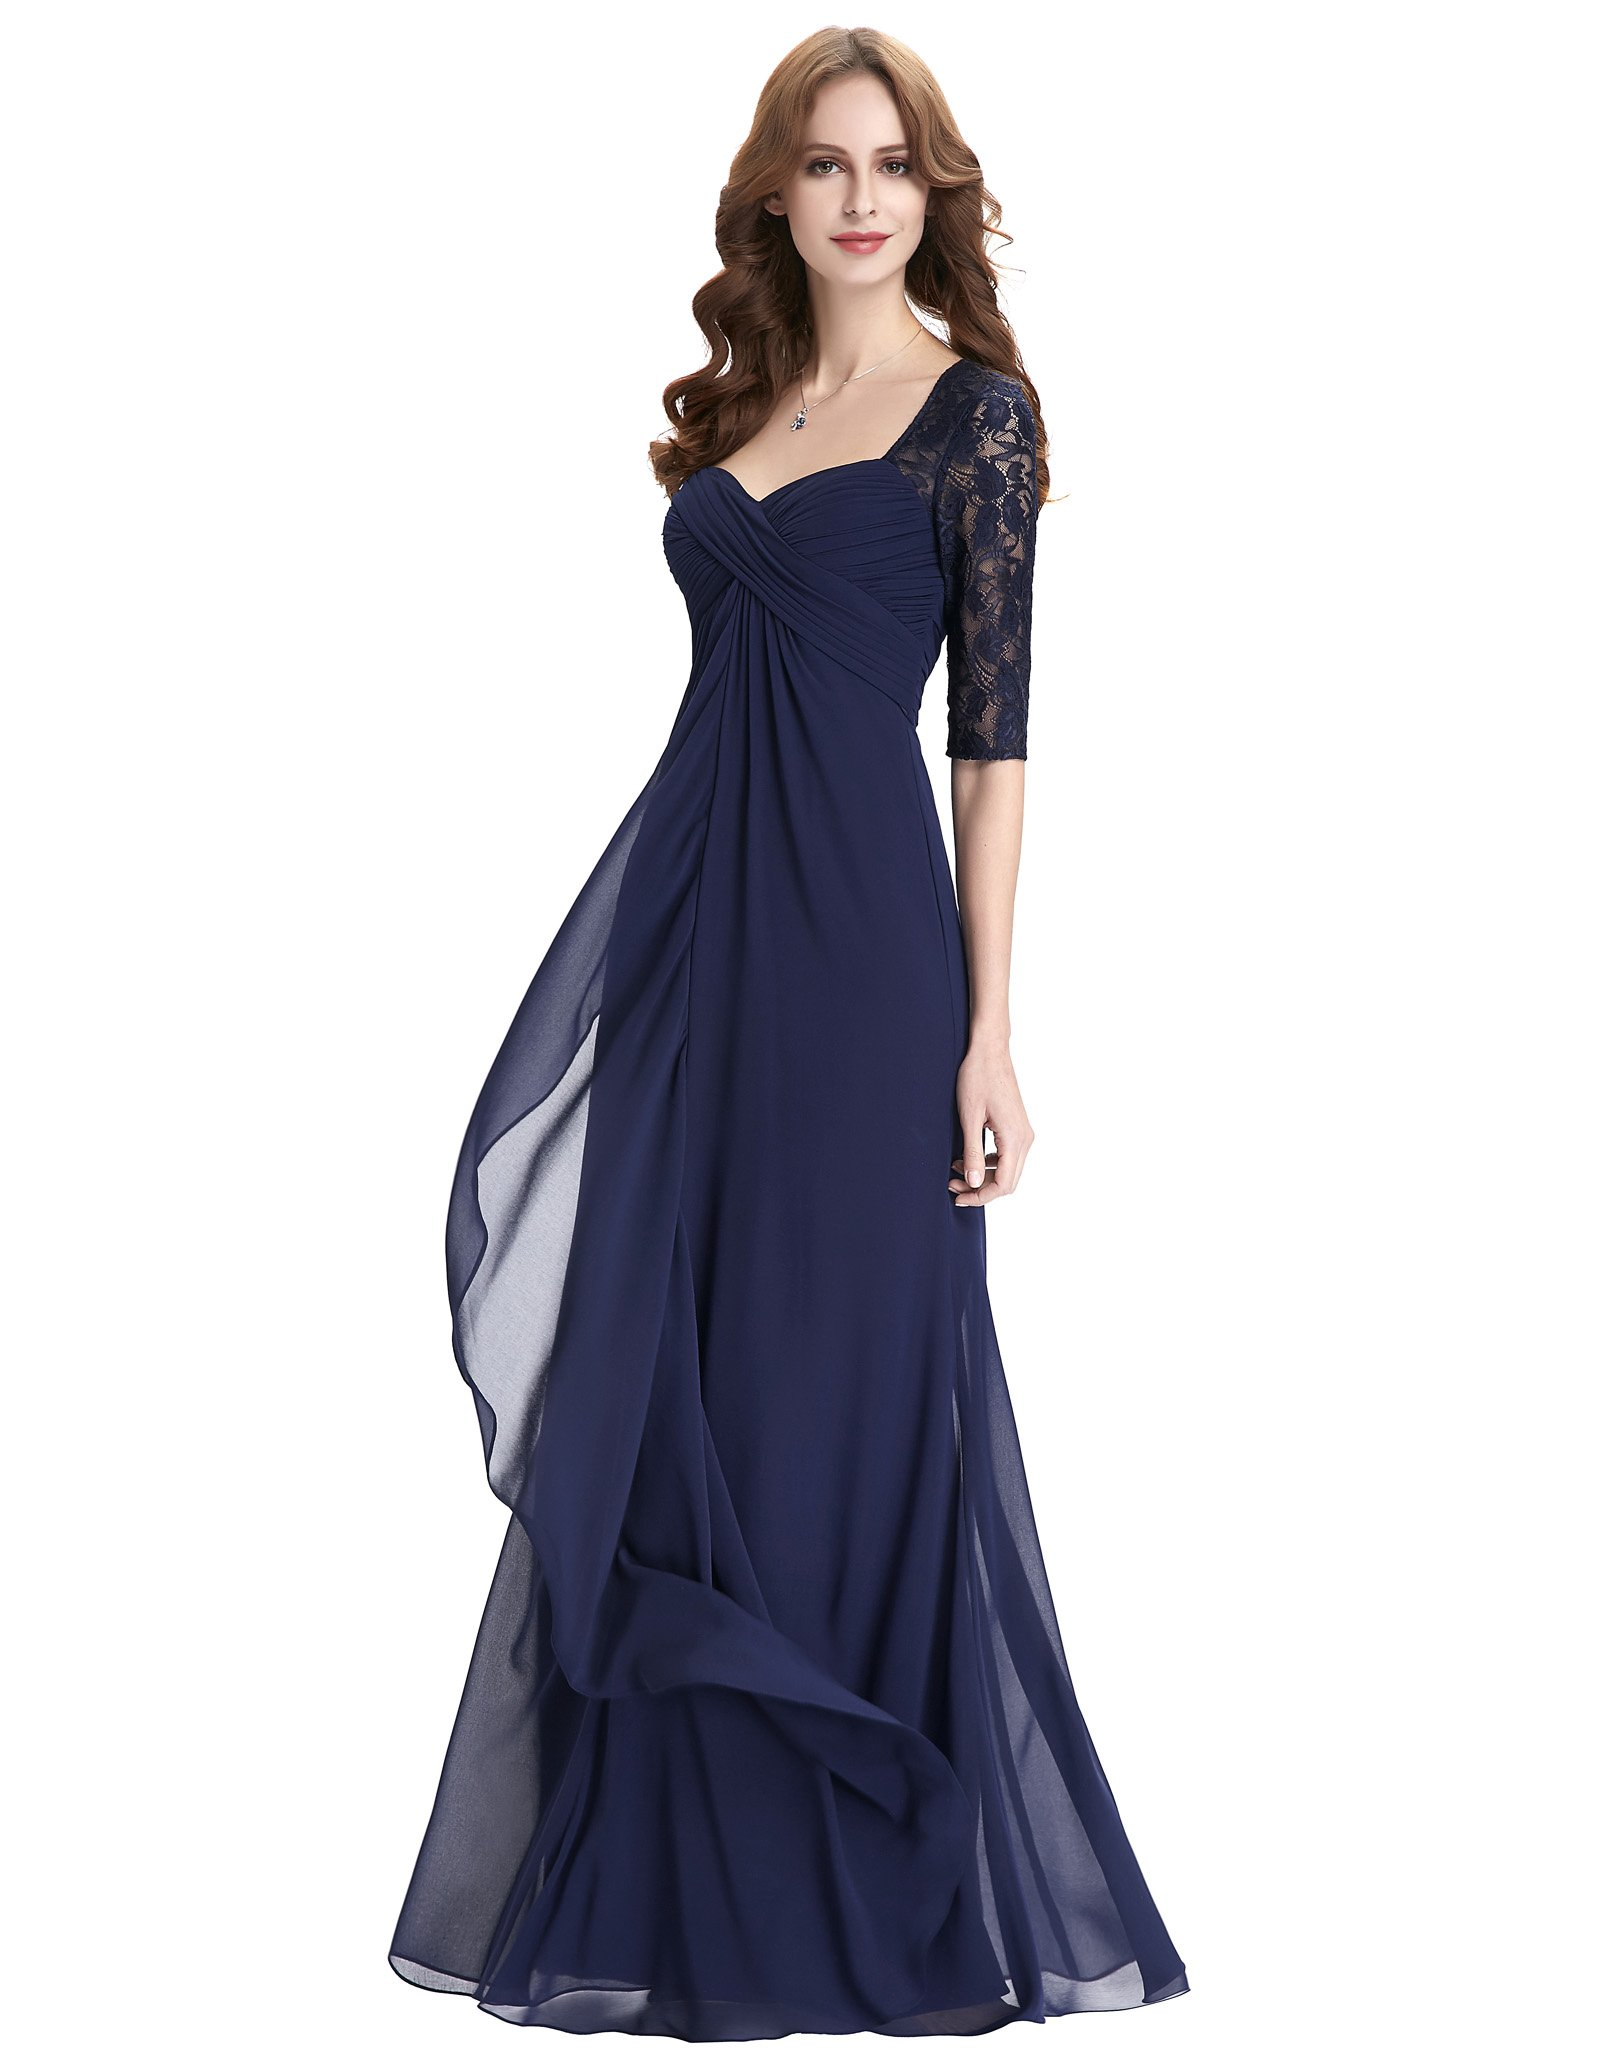 Modest Prom Dress: Amazon.com